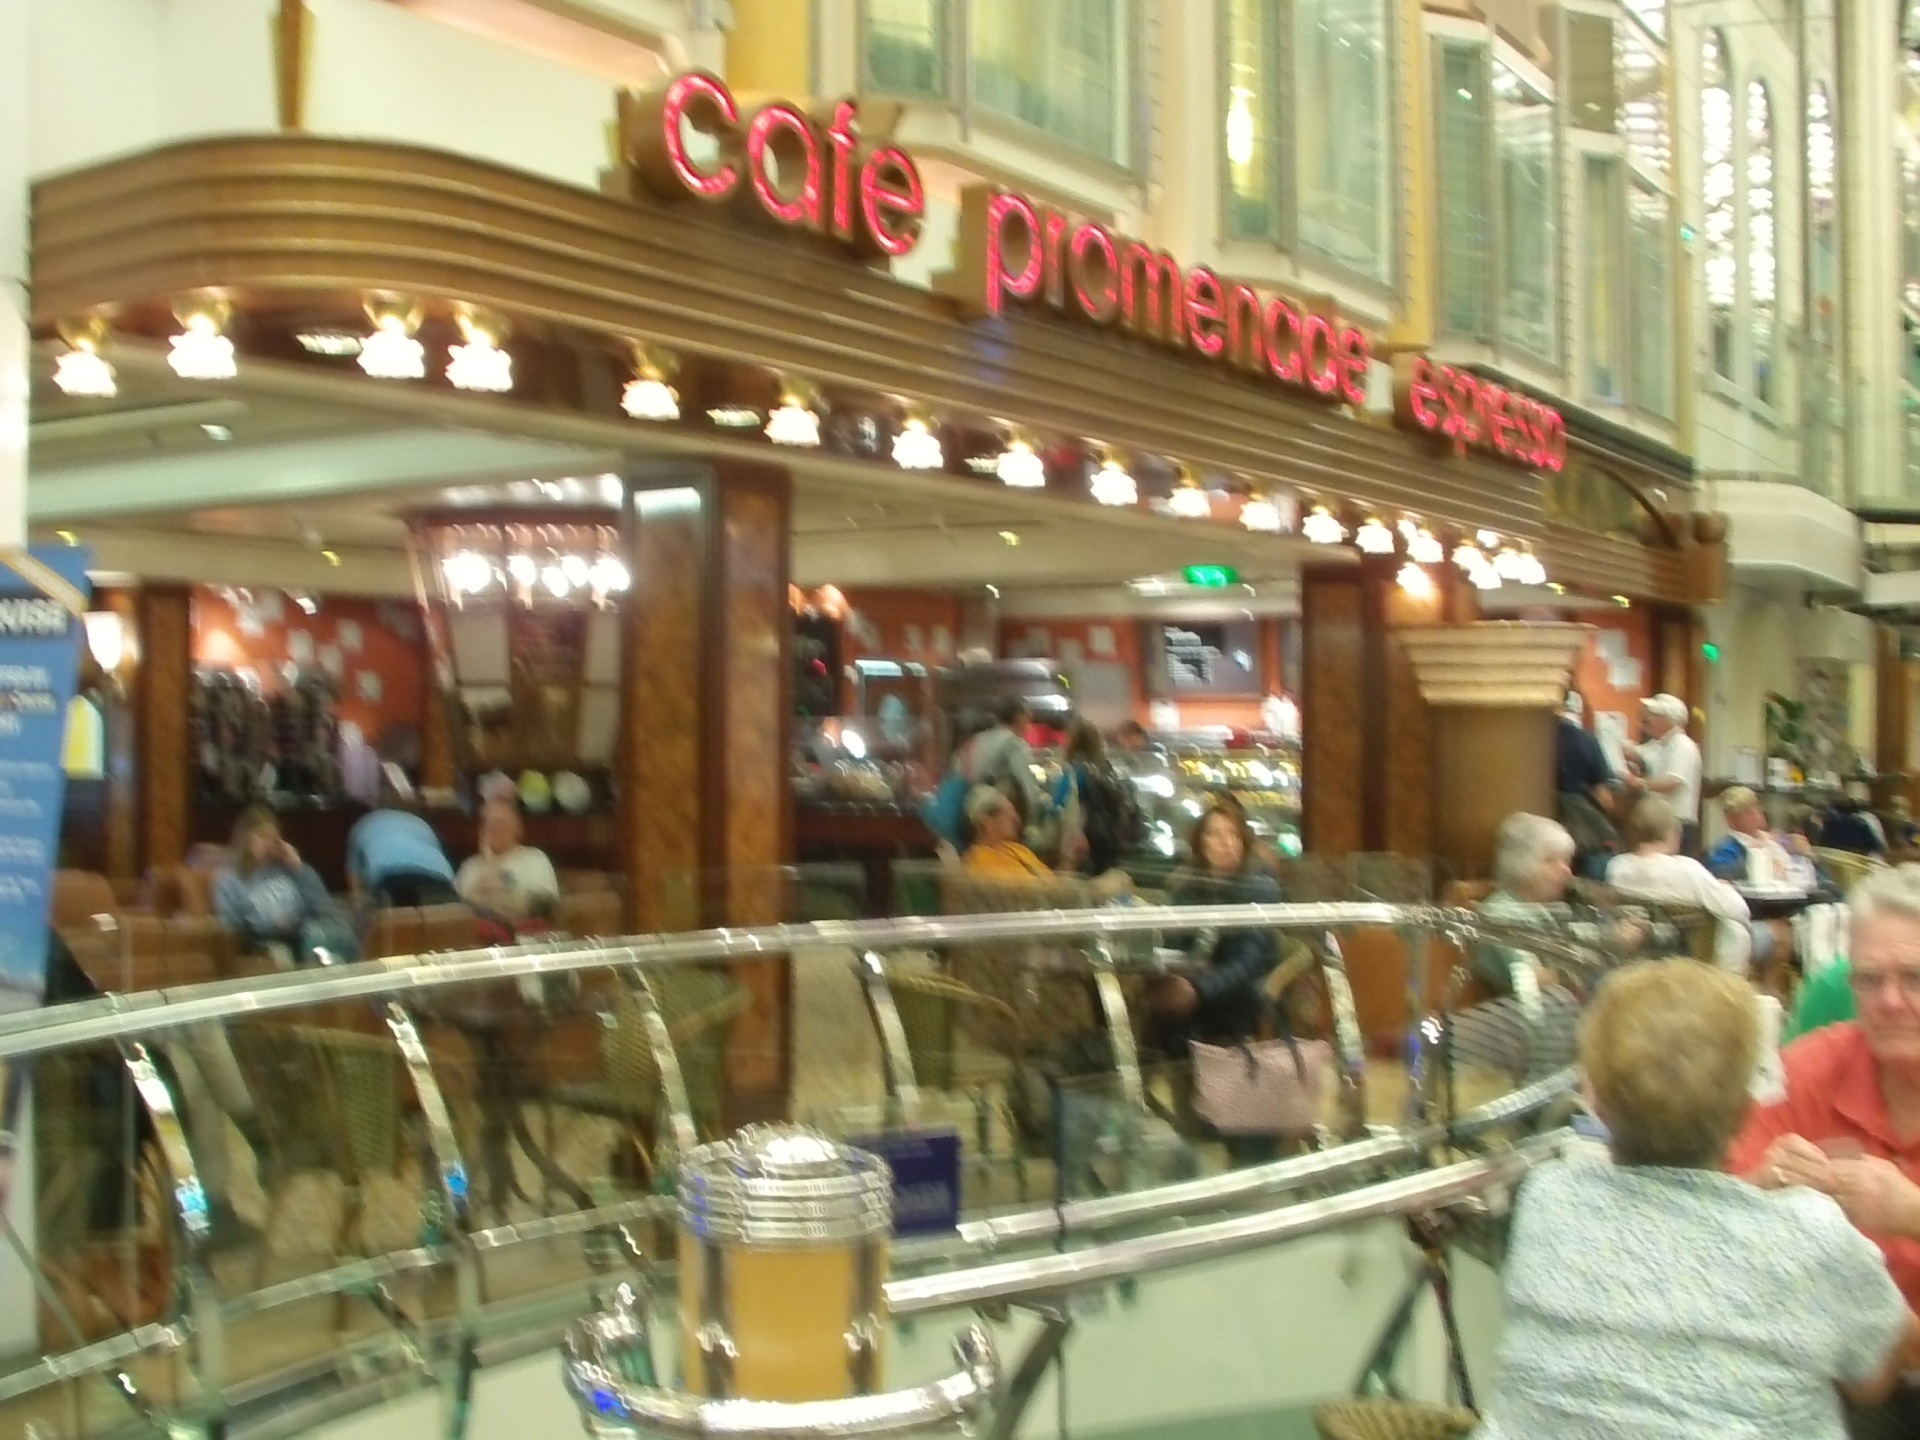 Cafe Promenade, Freedom of the Seas pictures, Royal Caribbean pictures